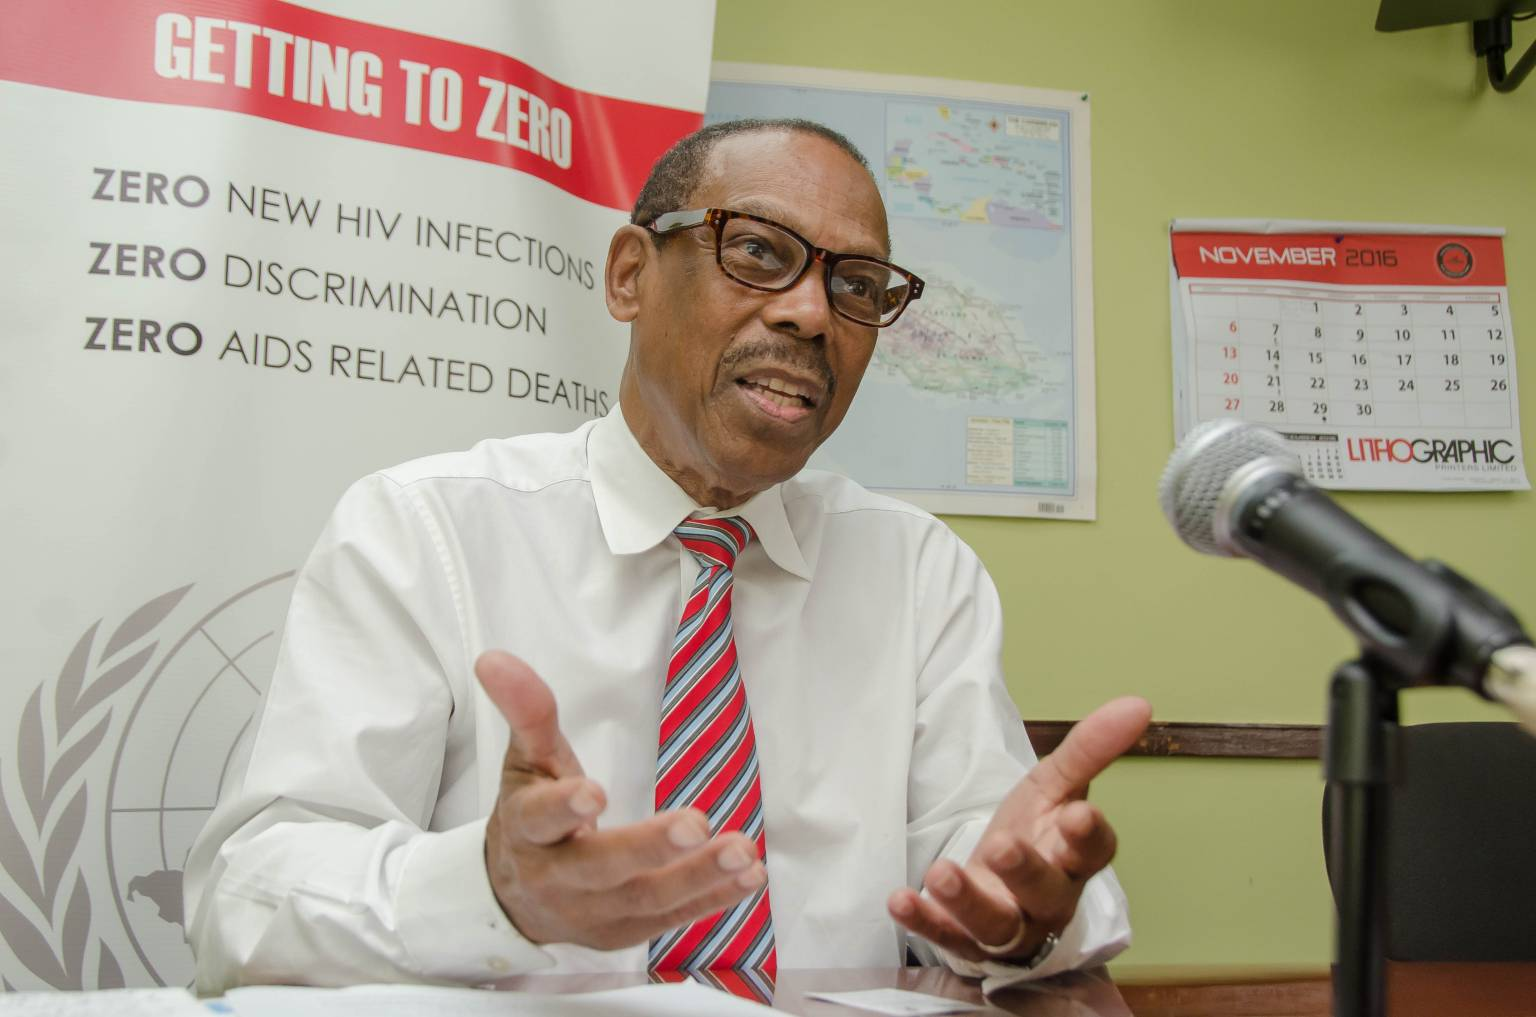 Dr. Edward Greene, United Nations Special Envoy for HIV and AIDS in the Caribbean